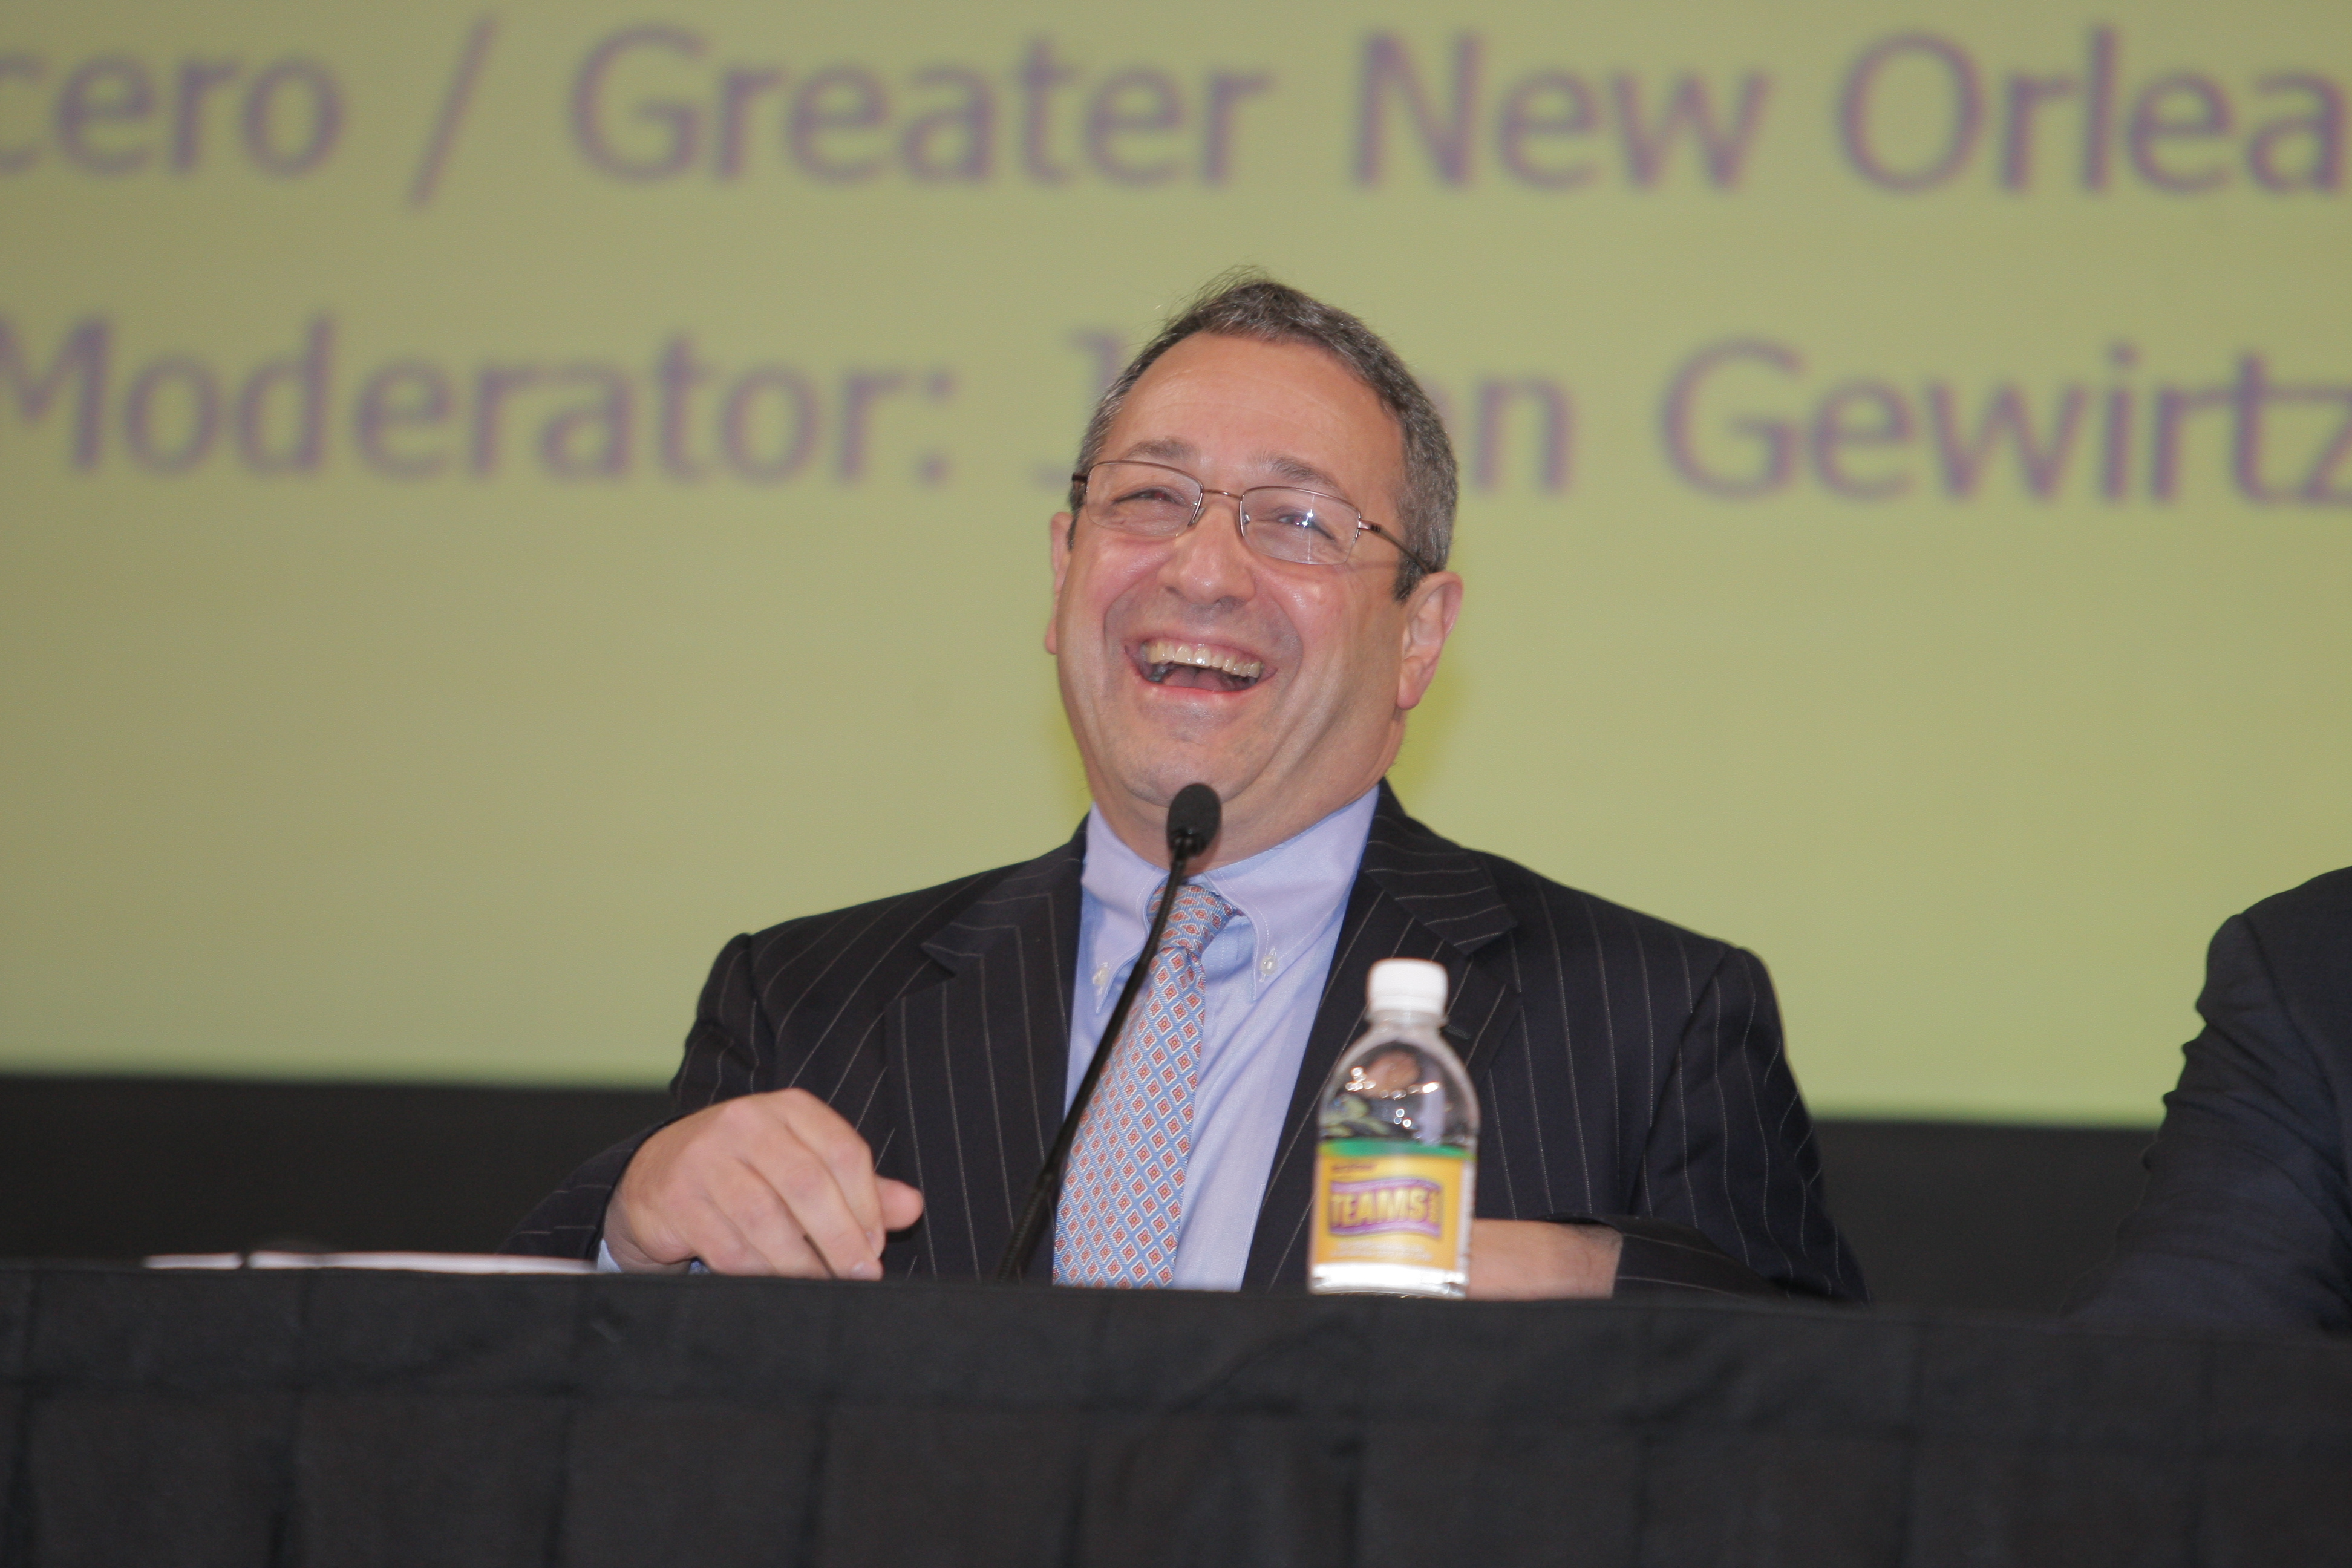 The NFL's Frank Supovitz at the TEAMS Conference & Expo in New Orleans